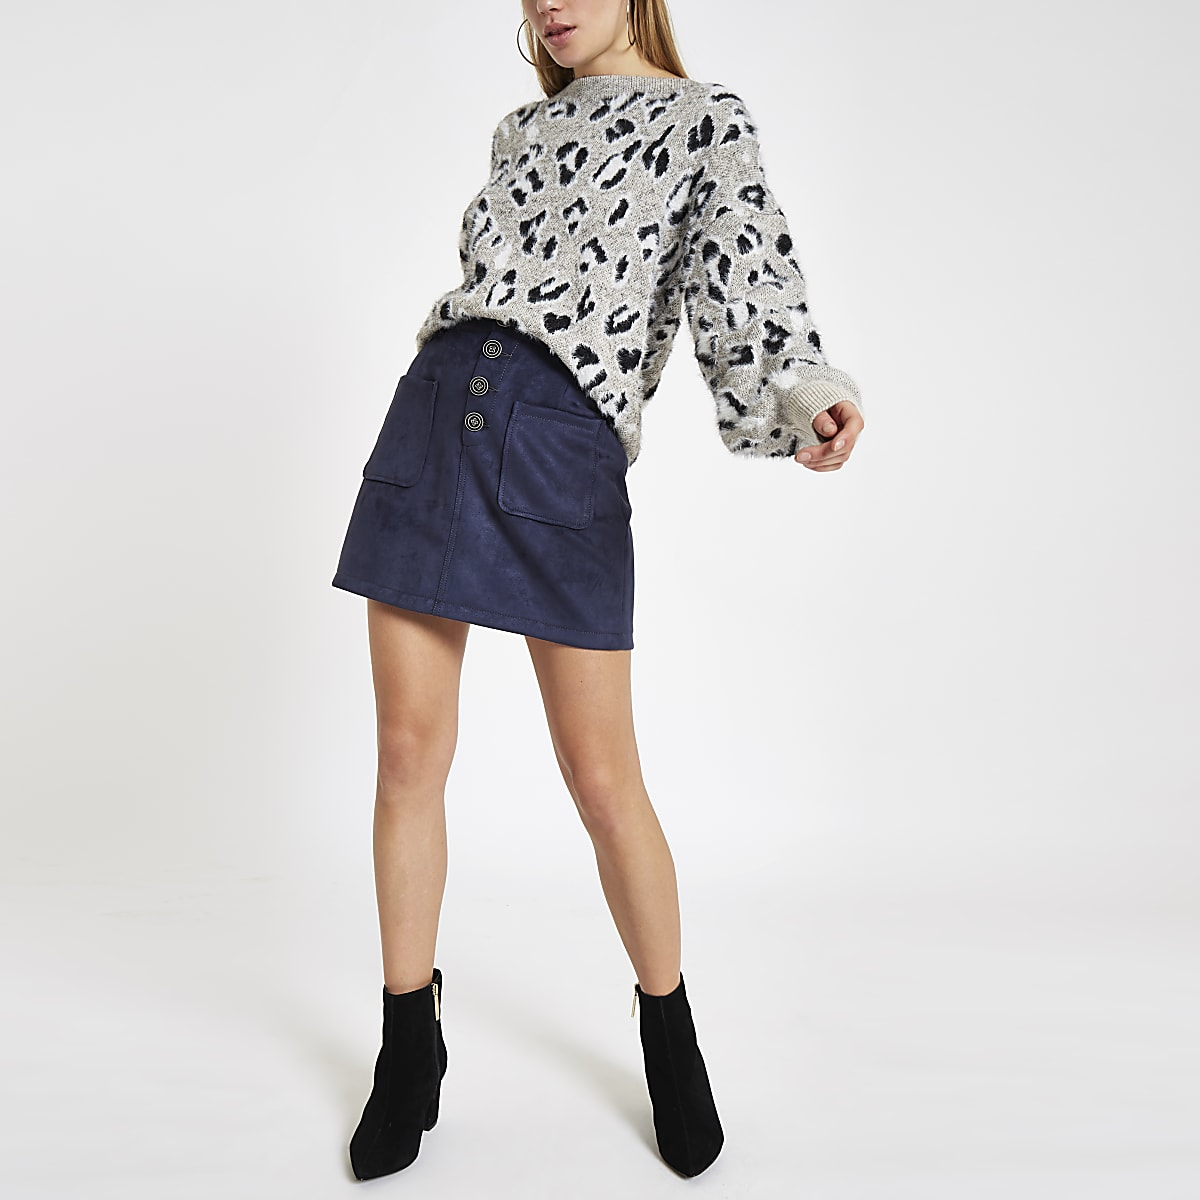 a0c0a4a4f0 Navy faux suede button front mini skirt - Mini Skirts - Skirts - women